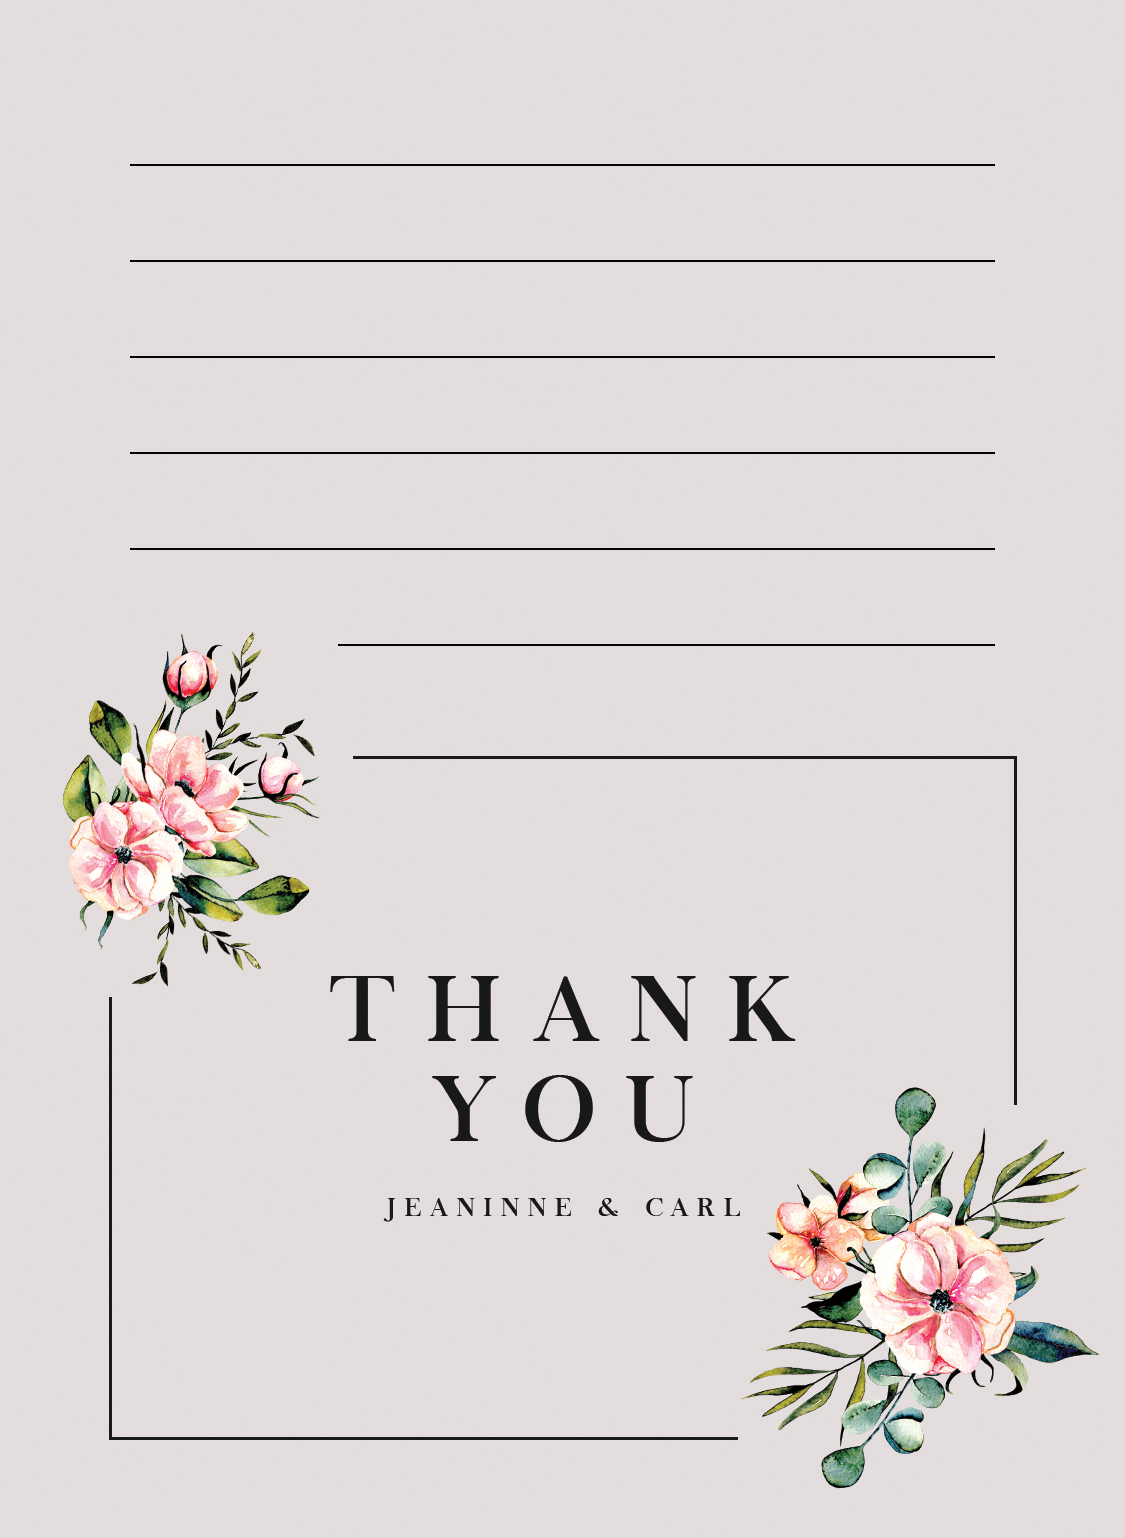 Thank You - US A1 CARD SIZE - COLOR 3_RGB.png